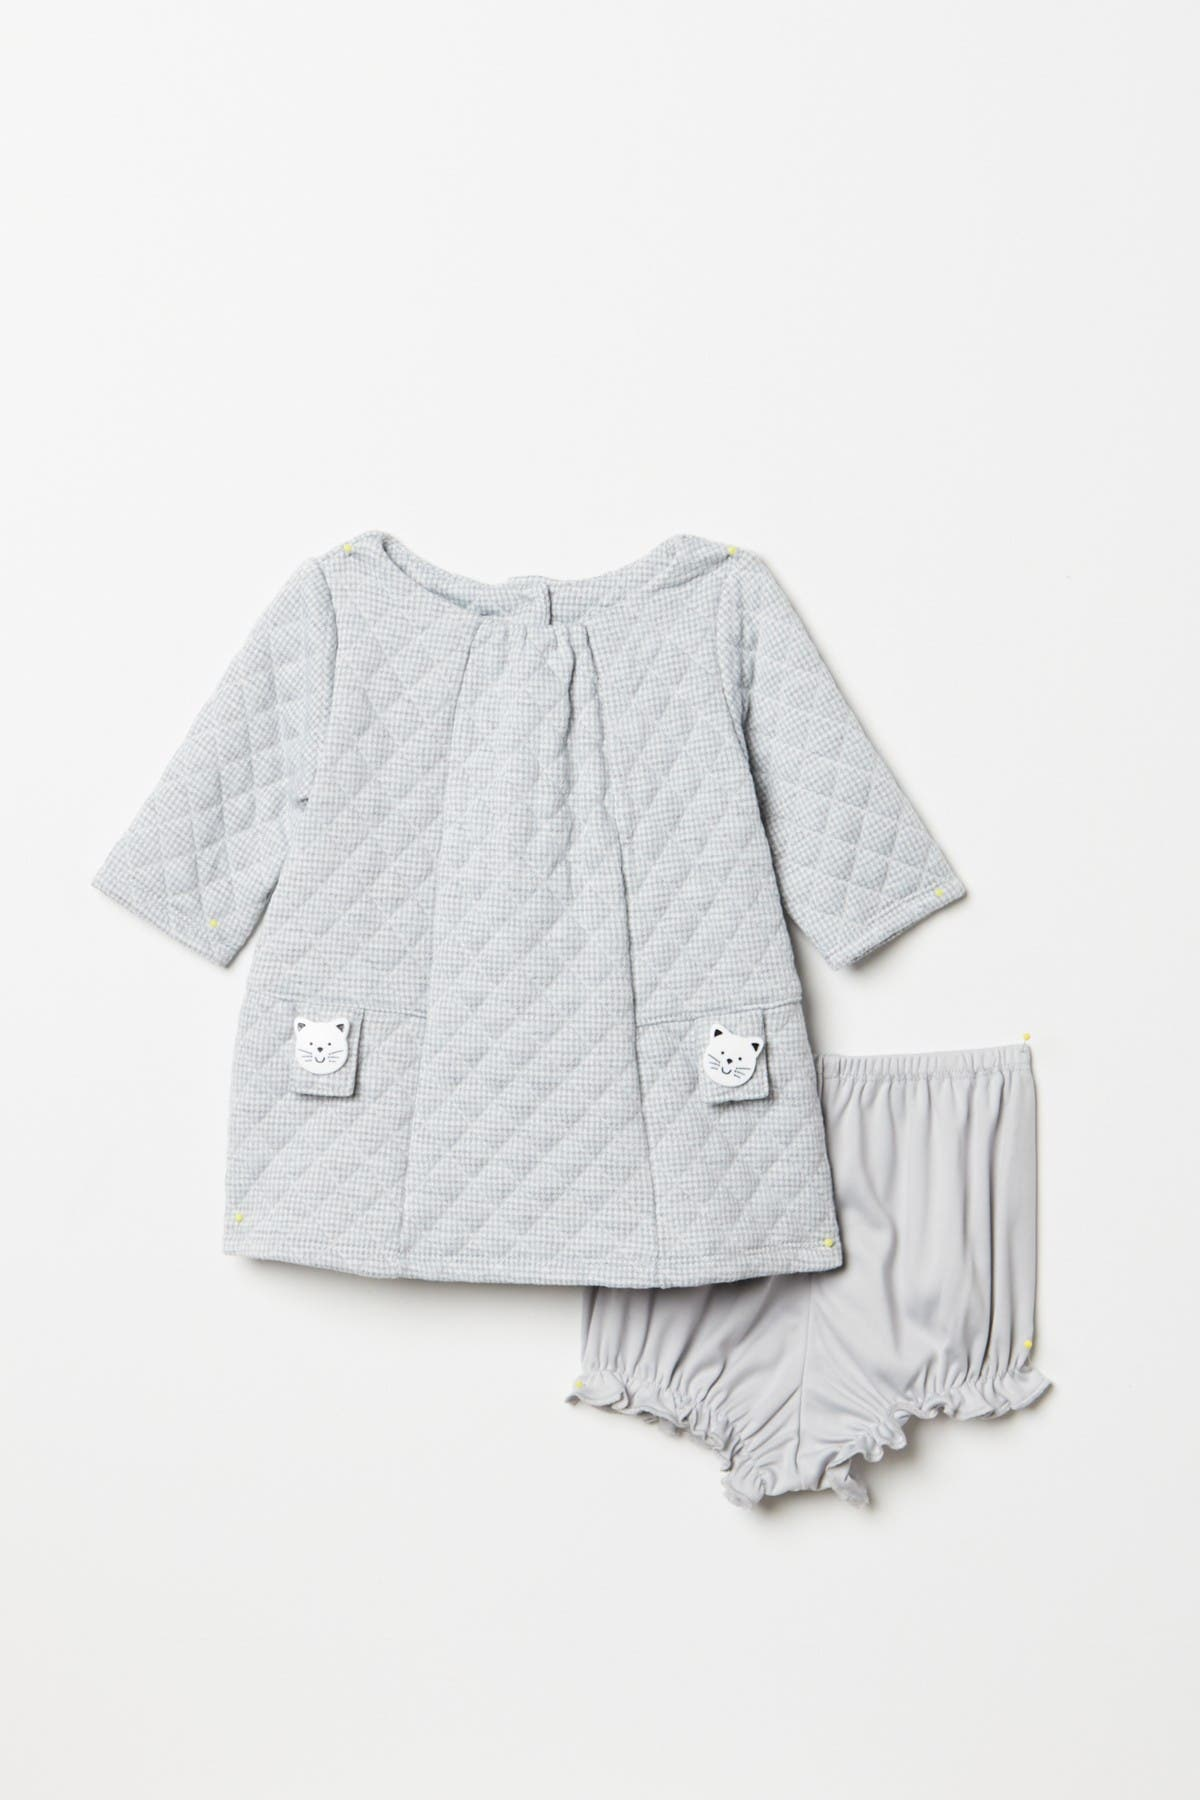 Image of Pippa & Julie Quilted Kitty Detail Shift Dress